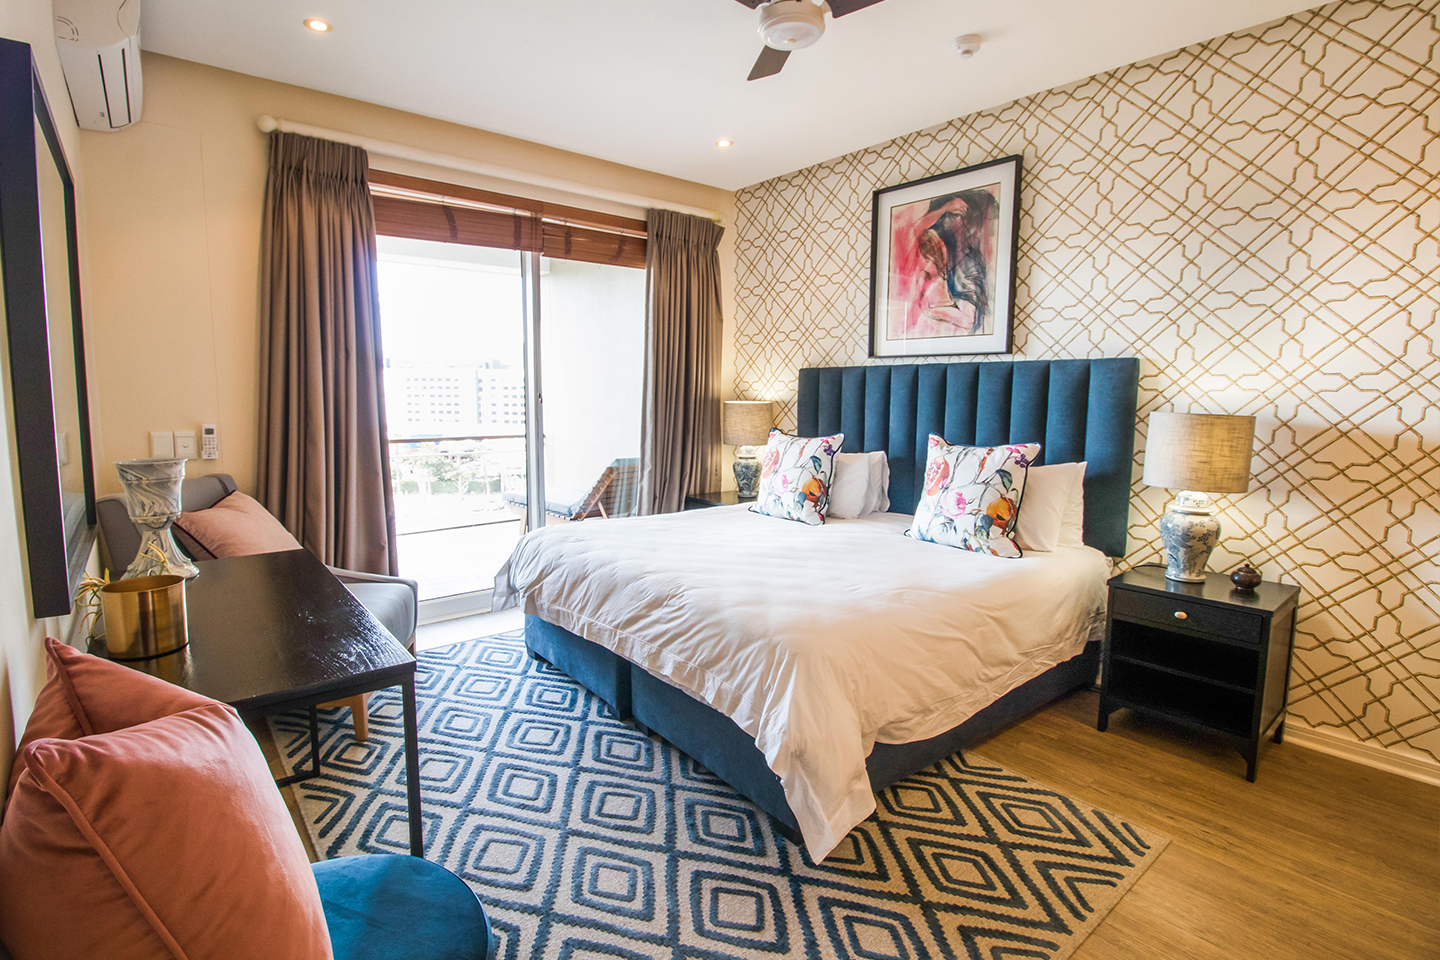 Bedroom space at Waterfront Village, Waterfront, Cape Town - Citybase Apartments